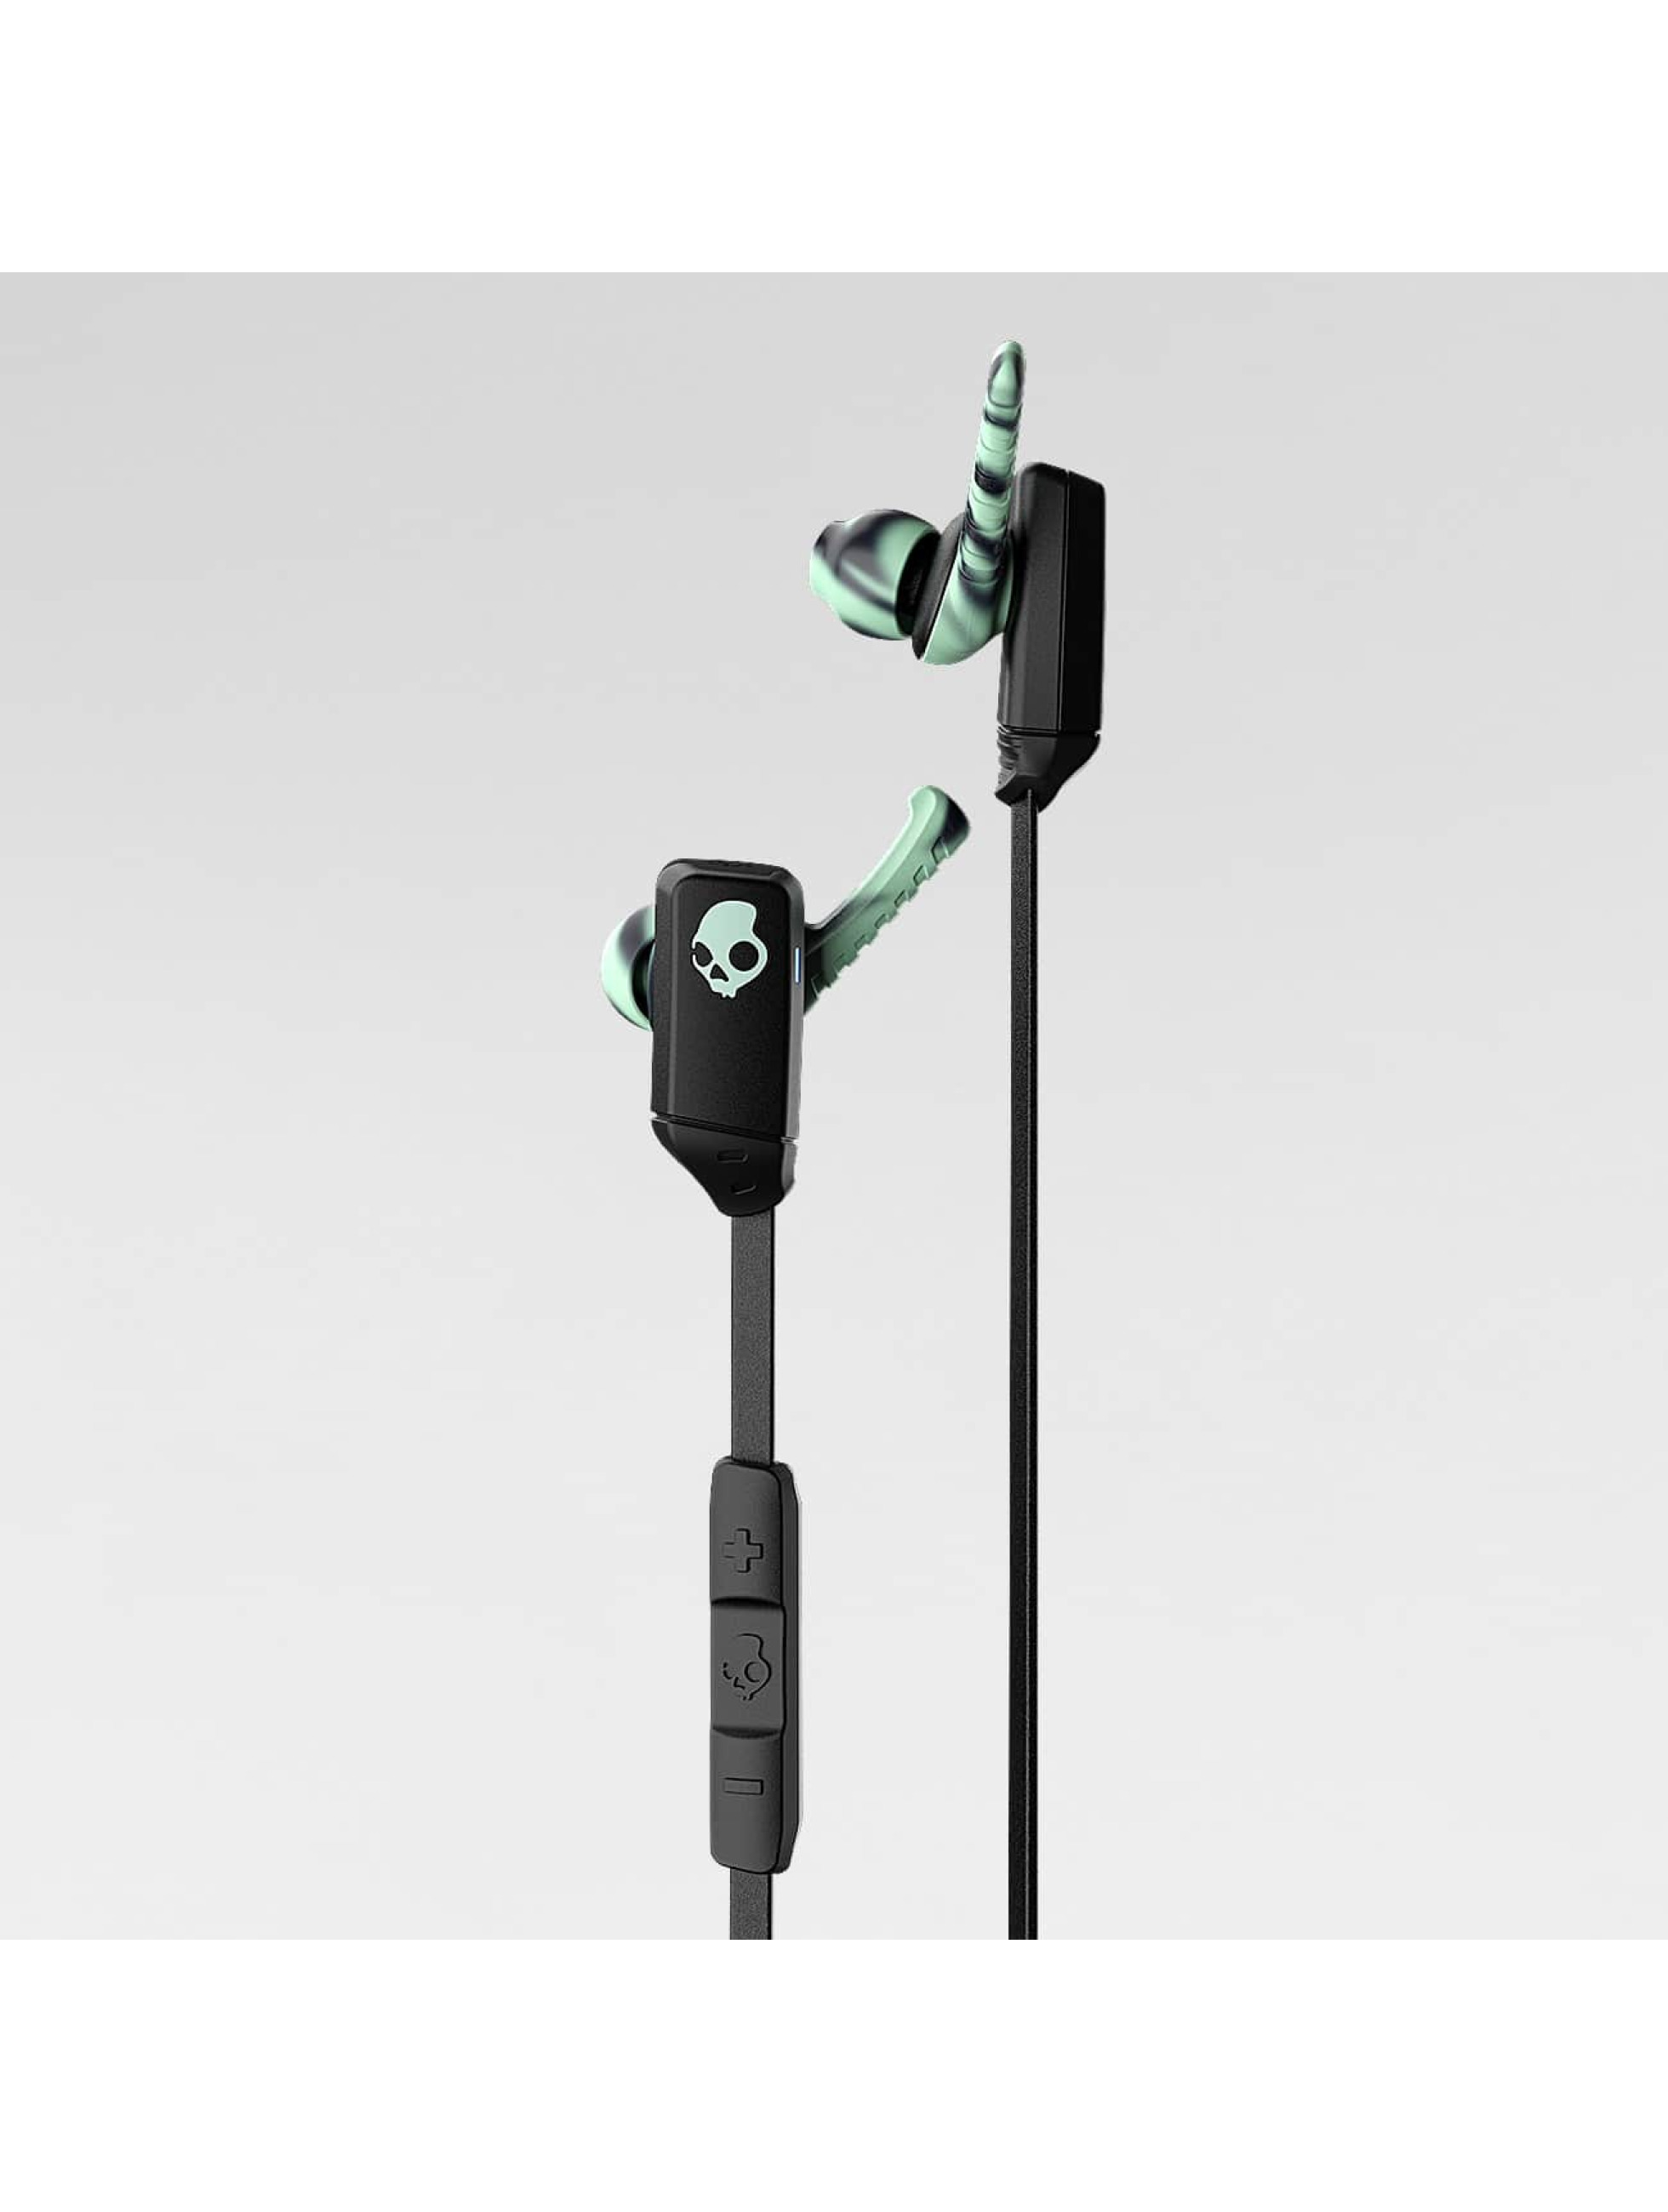 Skullcandy Sluchátka Xtfree Wireless čern